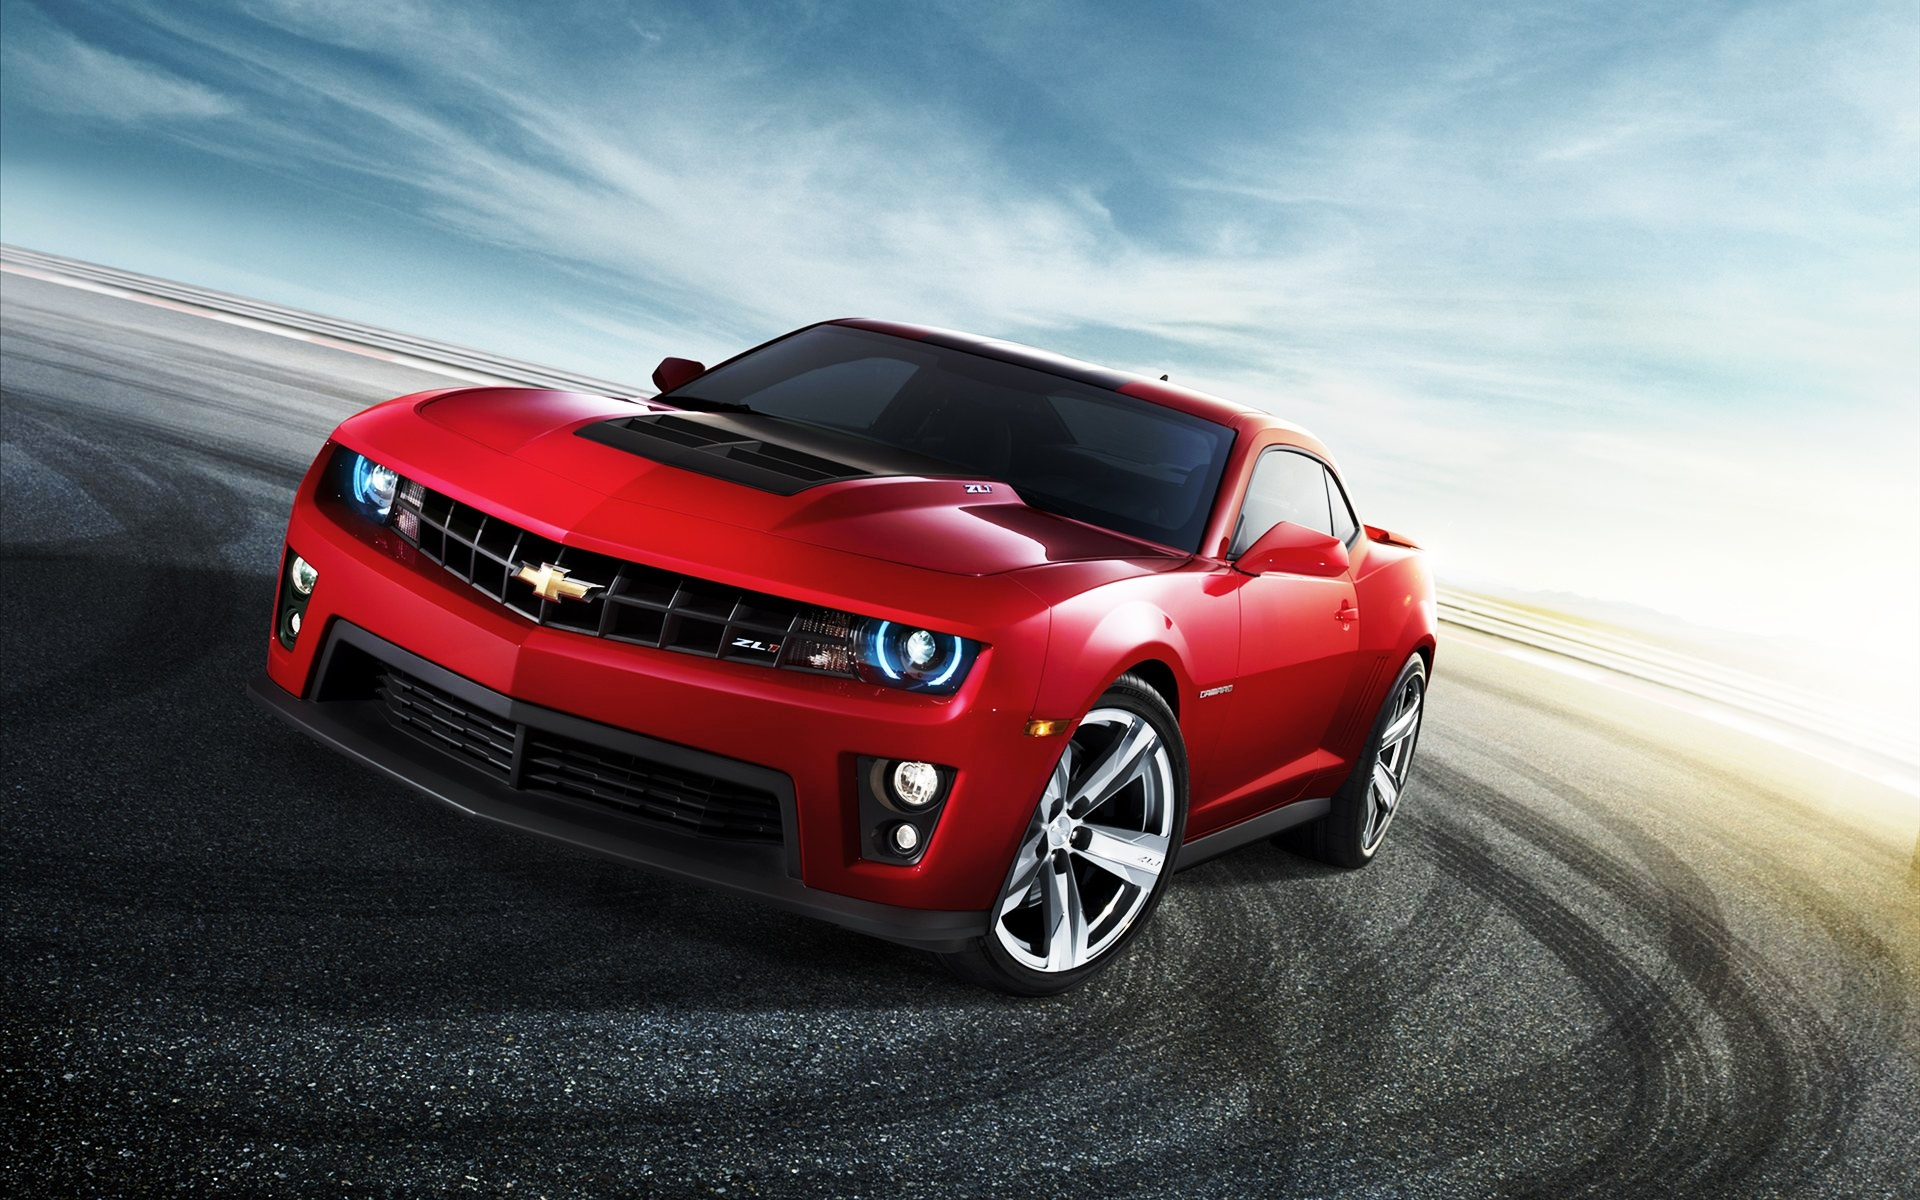 2012 Chevrolet Camaro Wallpapers HD Wallpapers 1920x1200